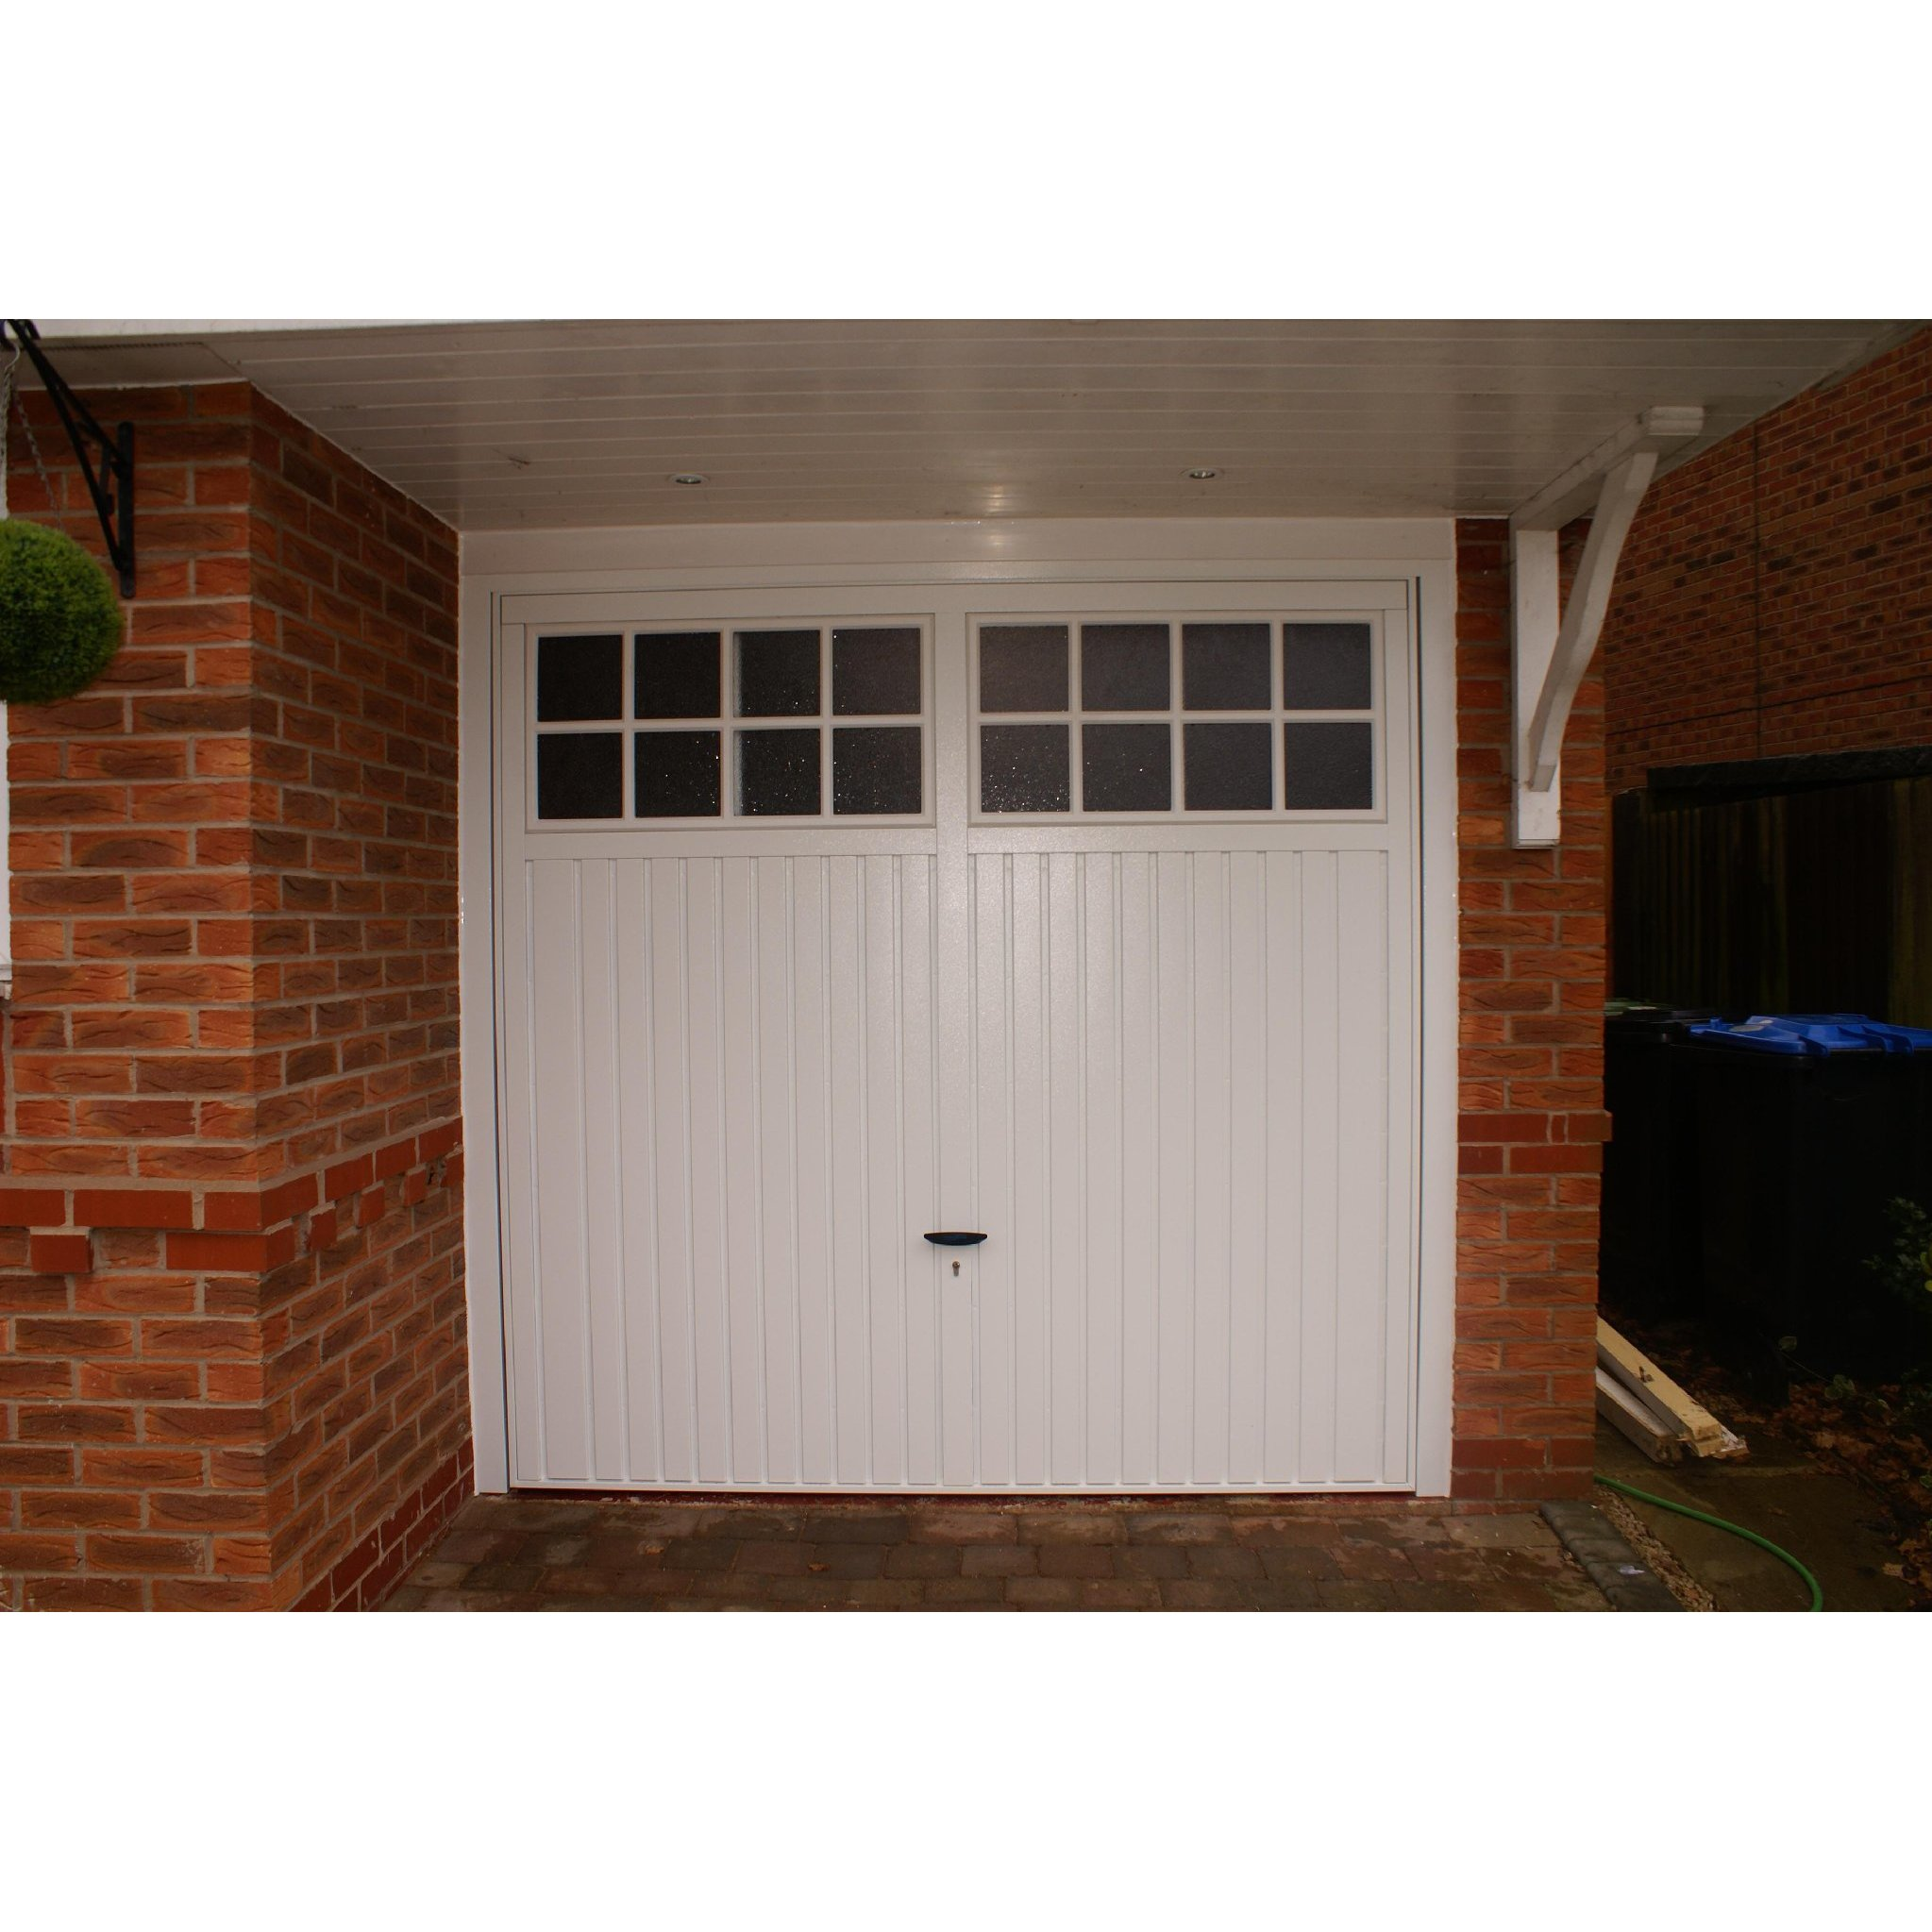 Automated Garage Doors Doors Shutters Sales And Make Your Own Beautiful  HD Wallpapers, Images Over 1000+ [ralydesign.ml]